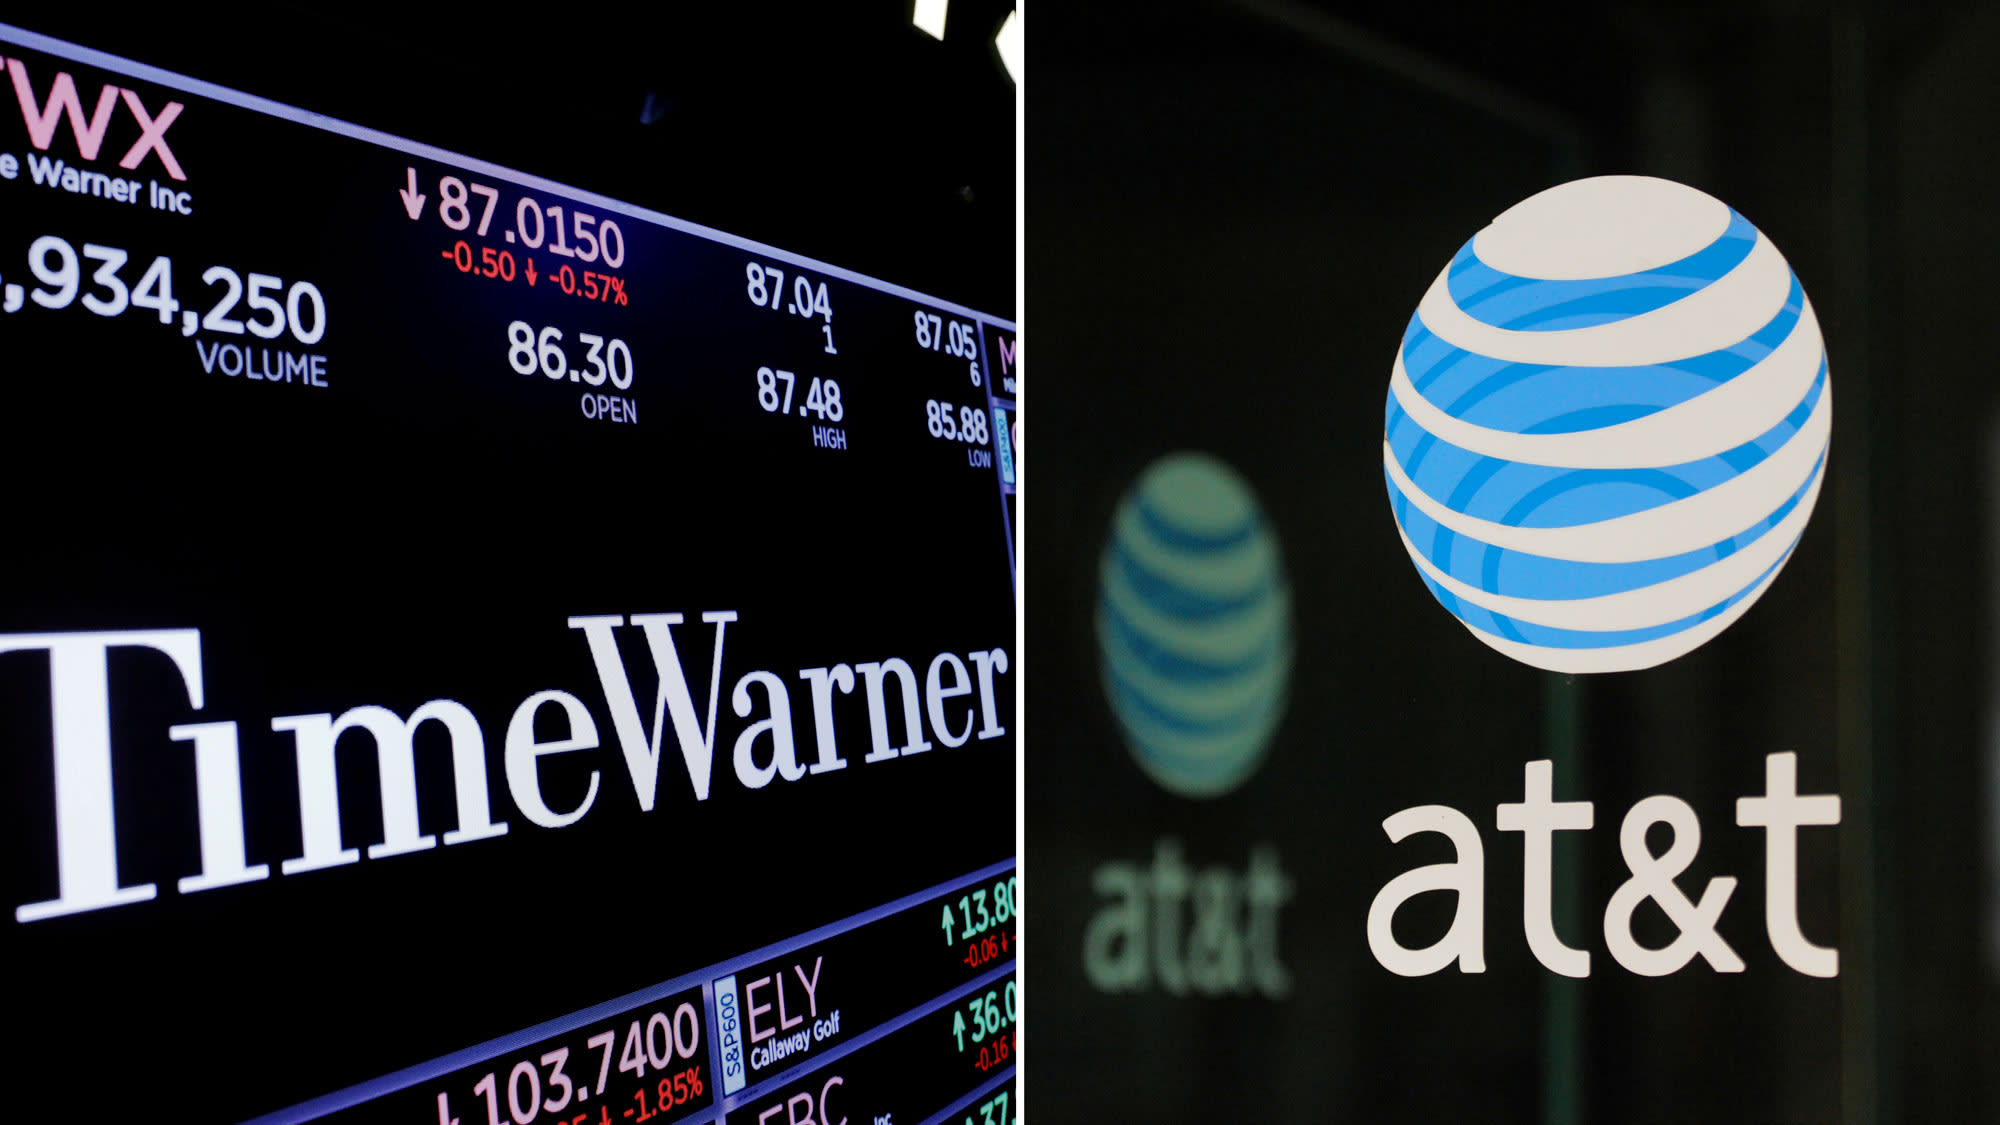 Amc Channel Number Time Warner Cable: AT6T to launch wireless plans bundled with video after its Time rh:cnbc.com,Design